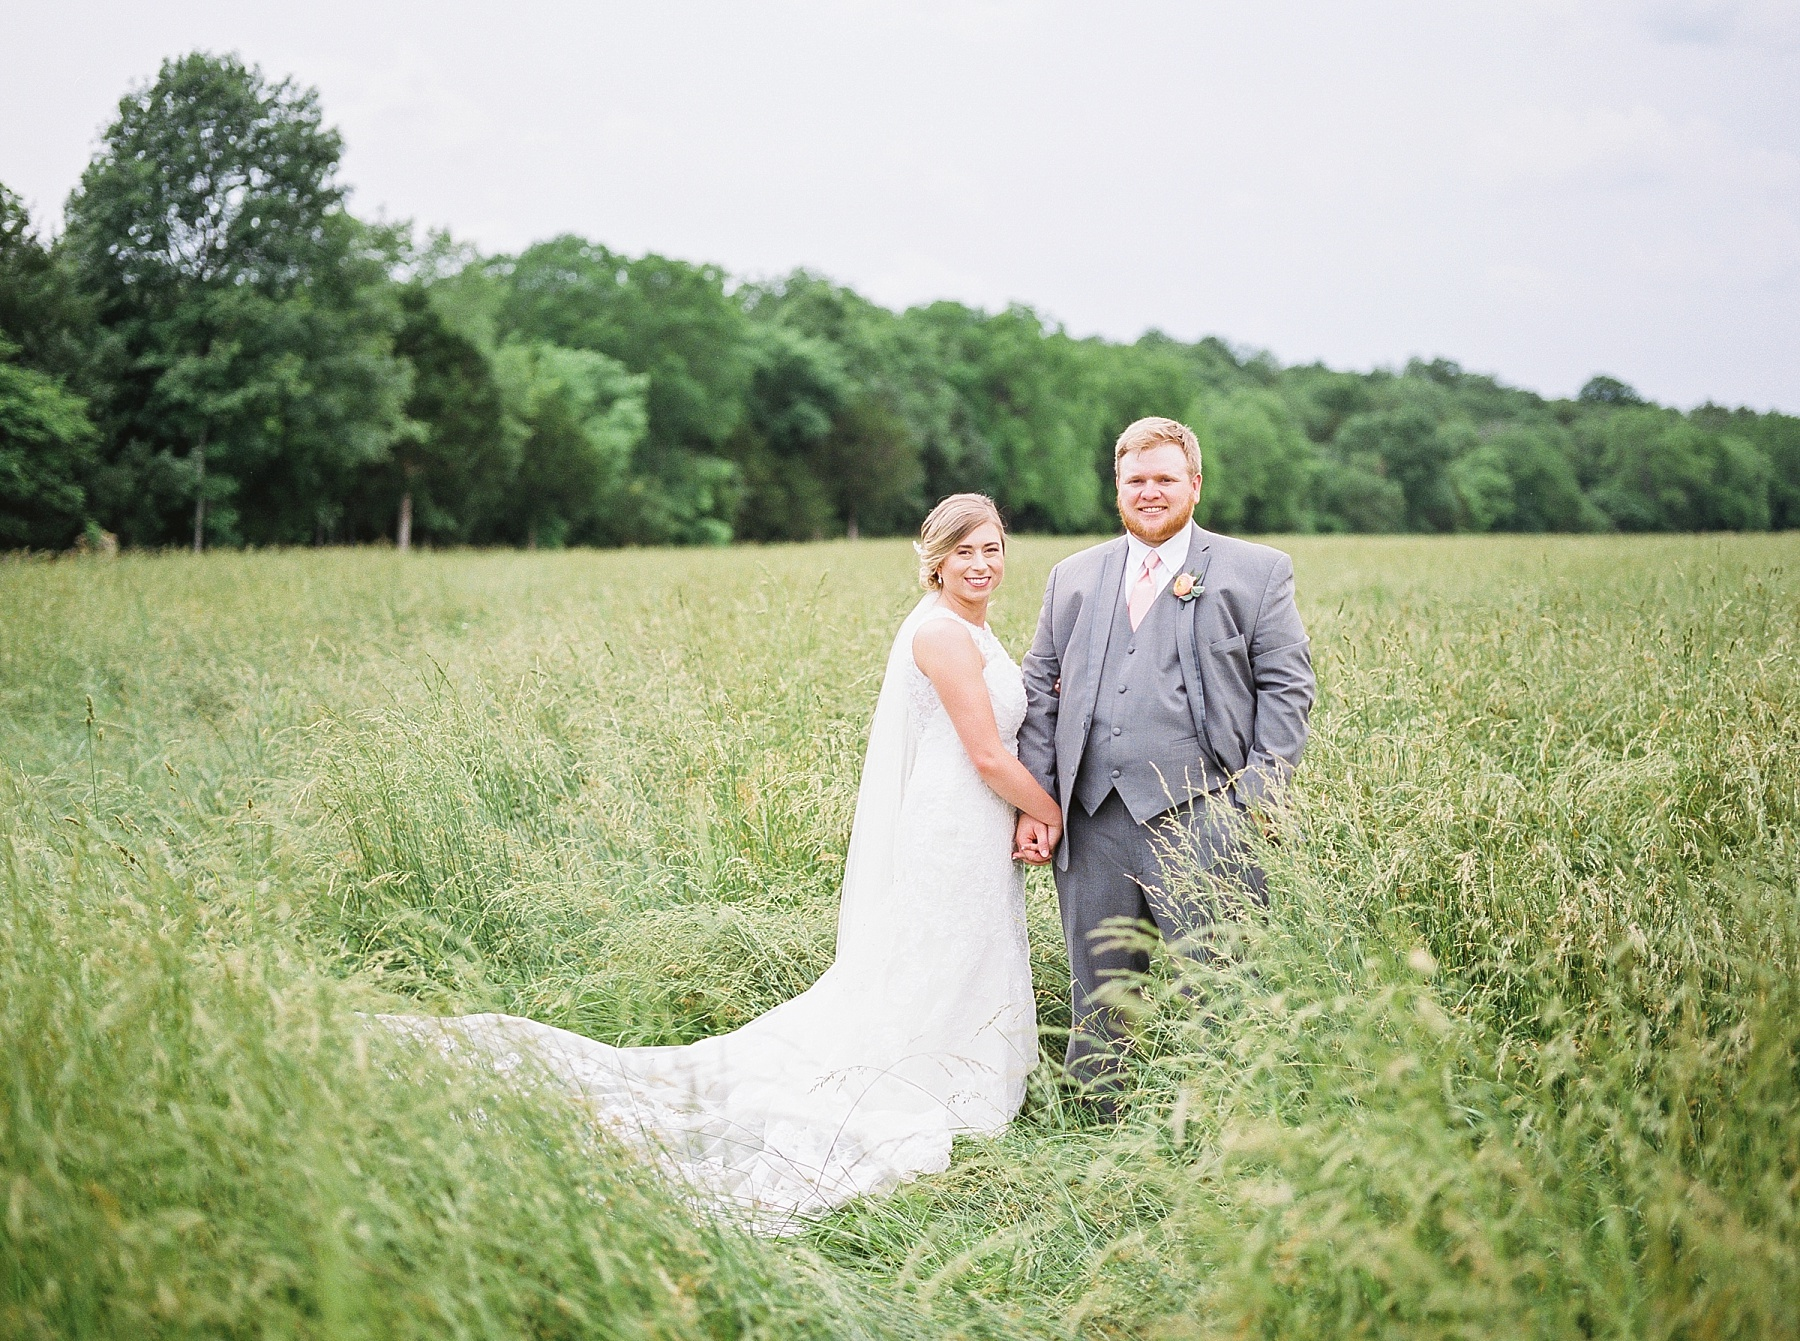 Peach and Dusty Blue Spring Wedding in Rolling Hills of Mid Missouri by Kelsi Kliethermes Photography Best Missouri and Maui Wedding Photographer_0021.jpg